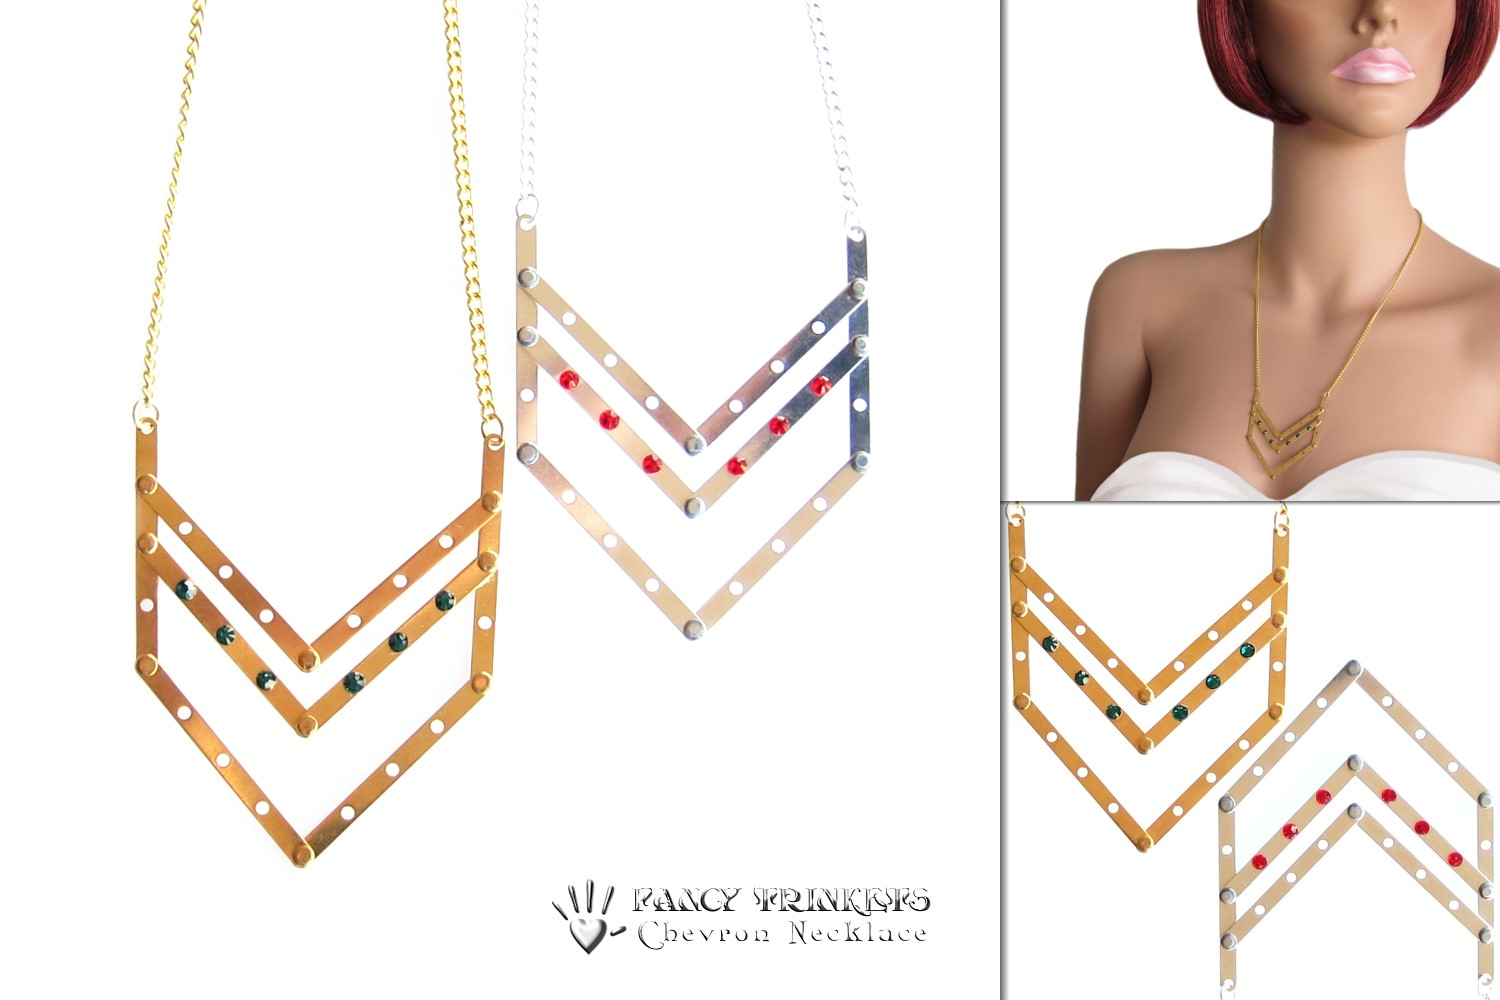 Chevron Necklace - compilation